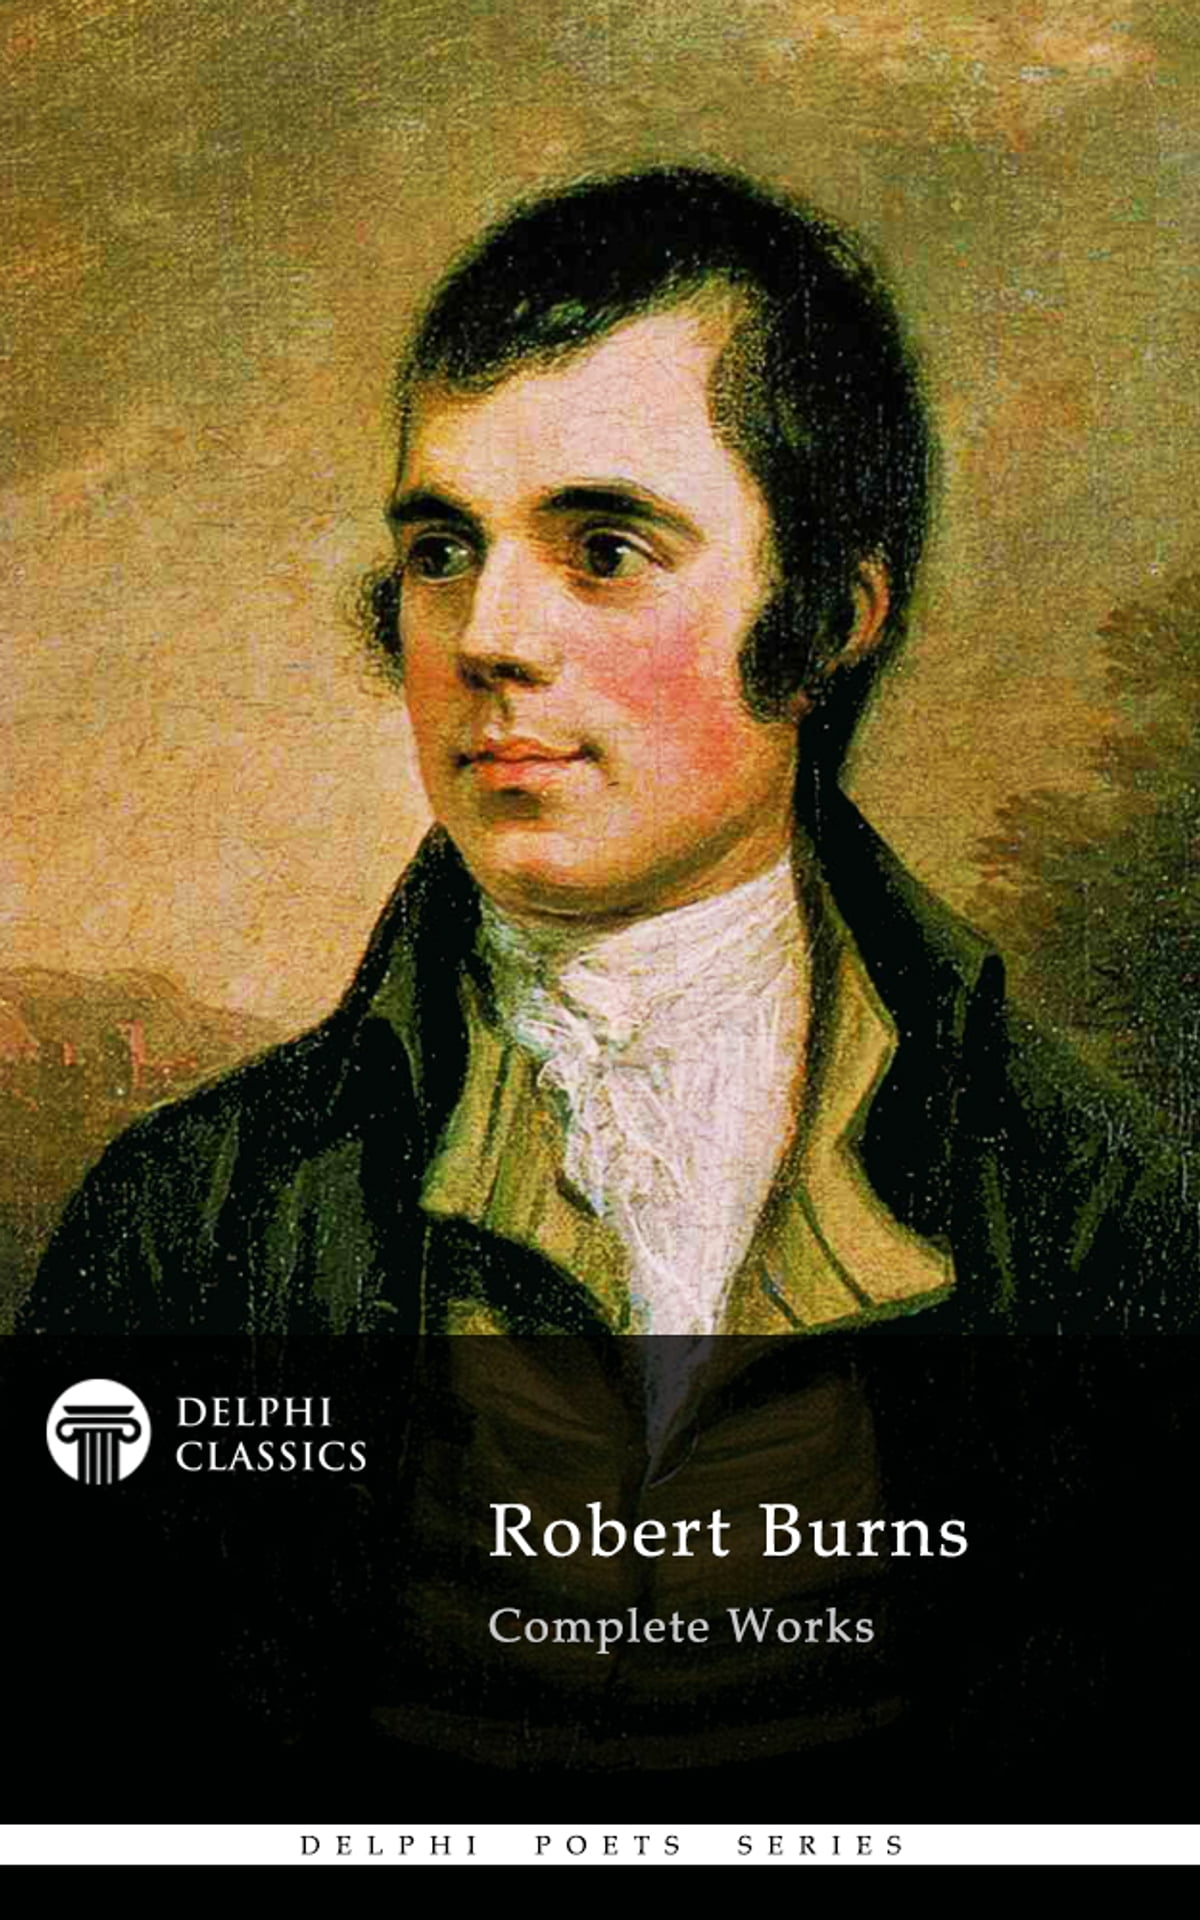 eBook of The Complete works of Robert